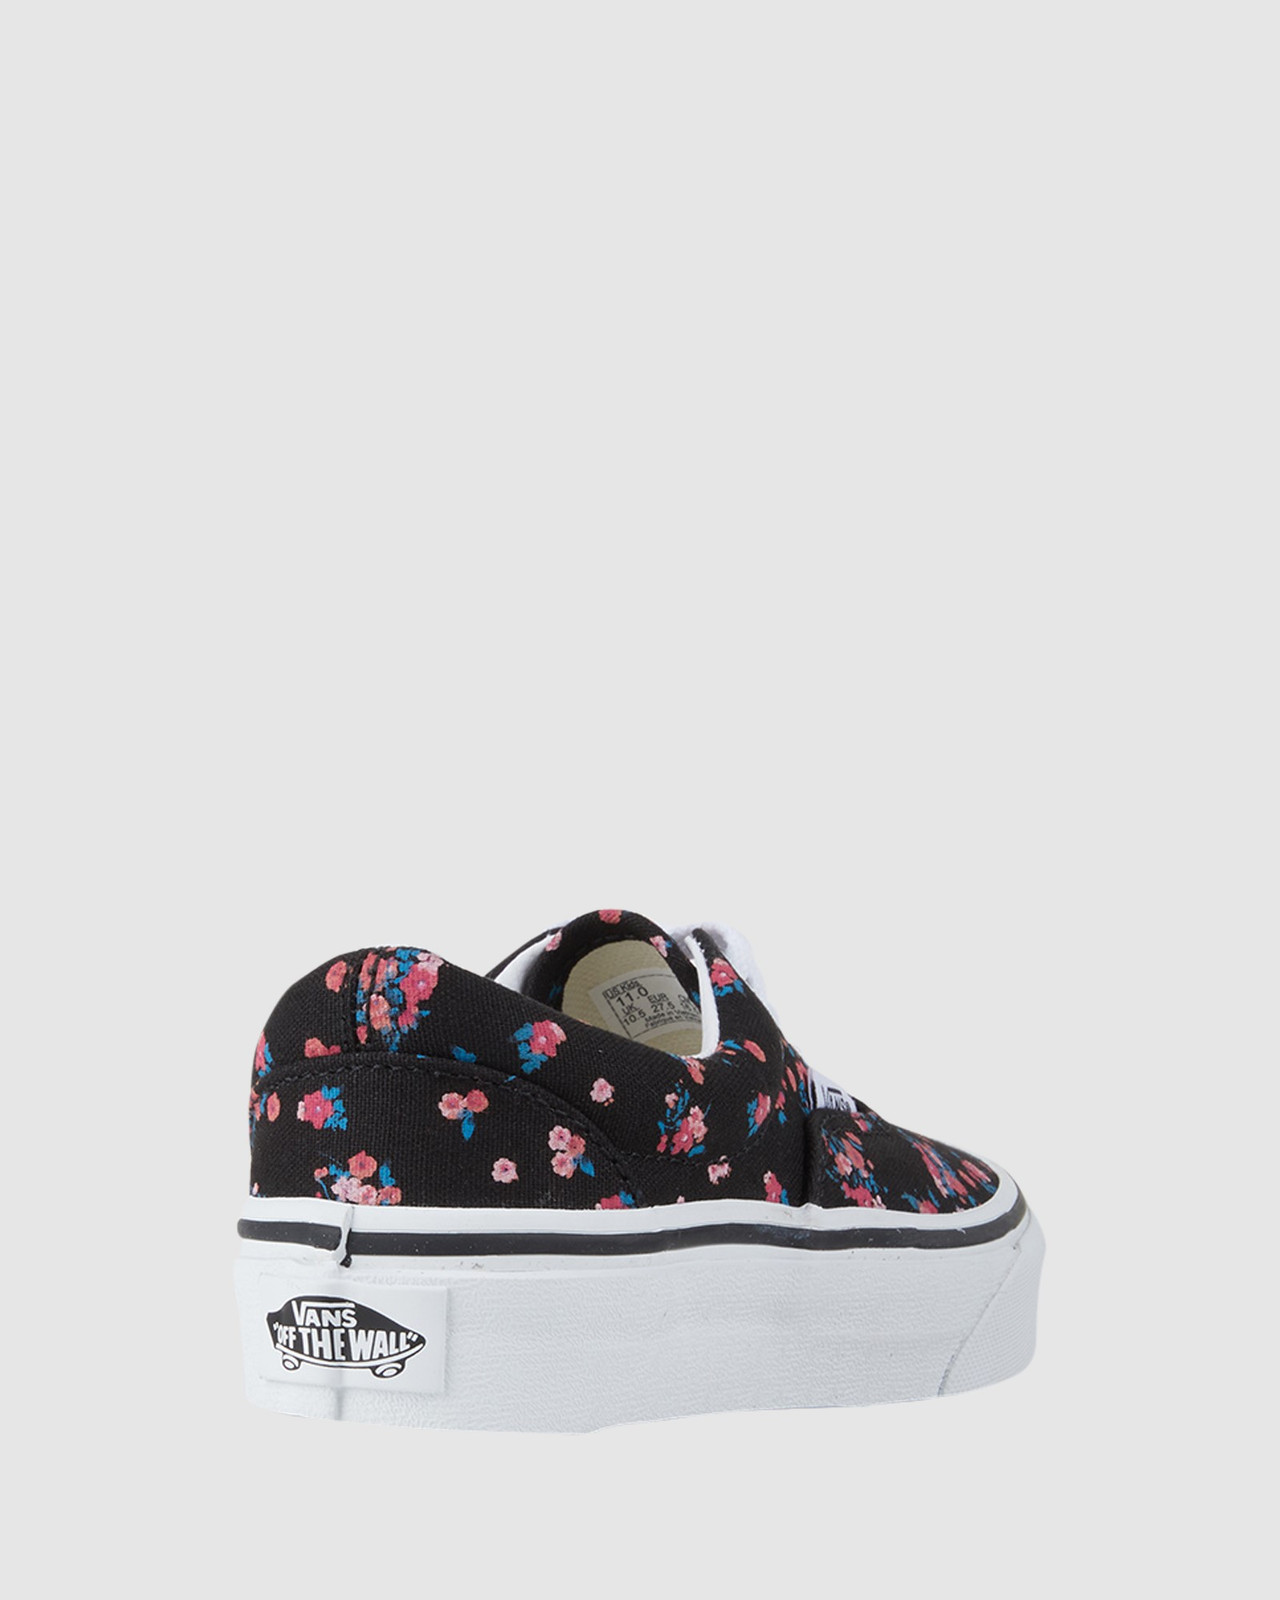 Shoes & Sox Girls Ezra Floral Youth Black/Floral